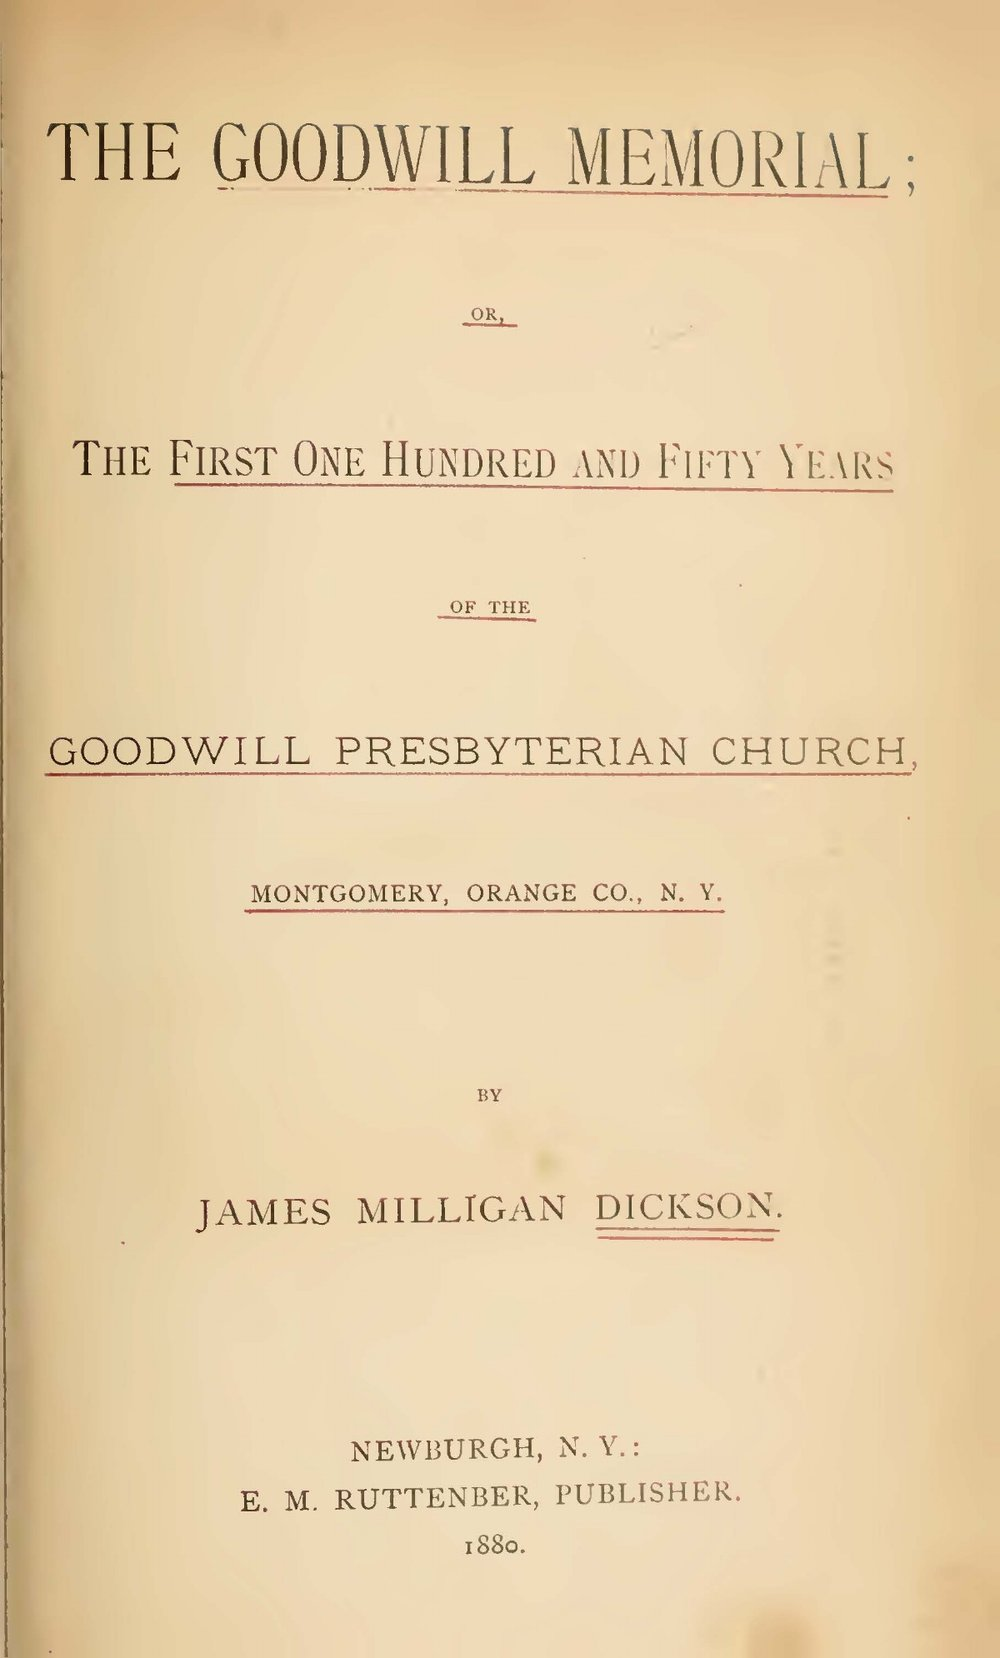 Dickson, James Milligan, The Goodwill Memorial Title Page.jpg